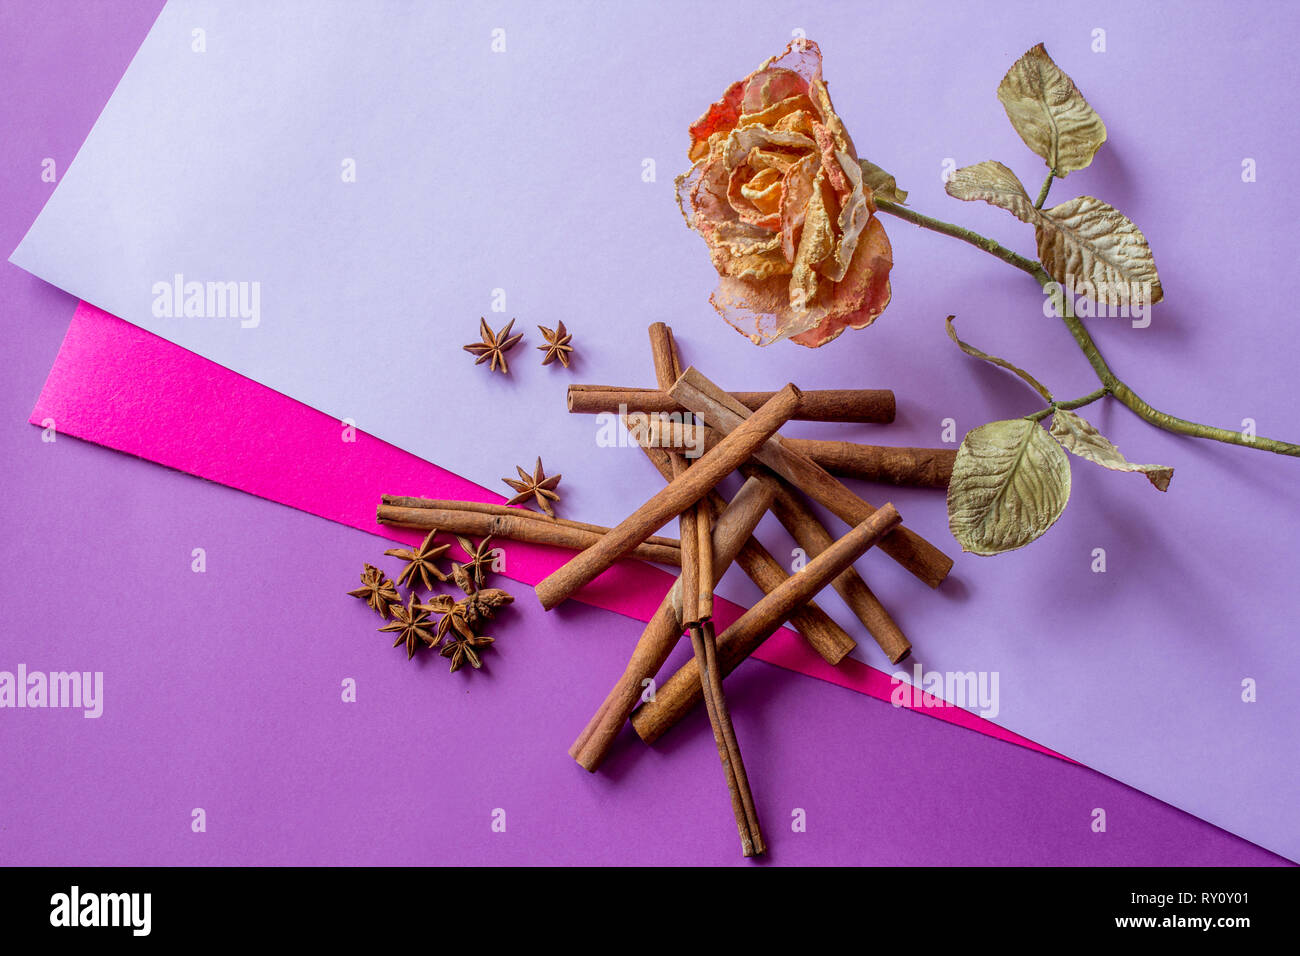 Still life of artificial rose, cinnamon sticks and anise stars lying on coloured background - Stock Image